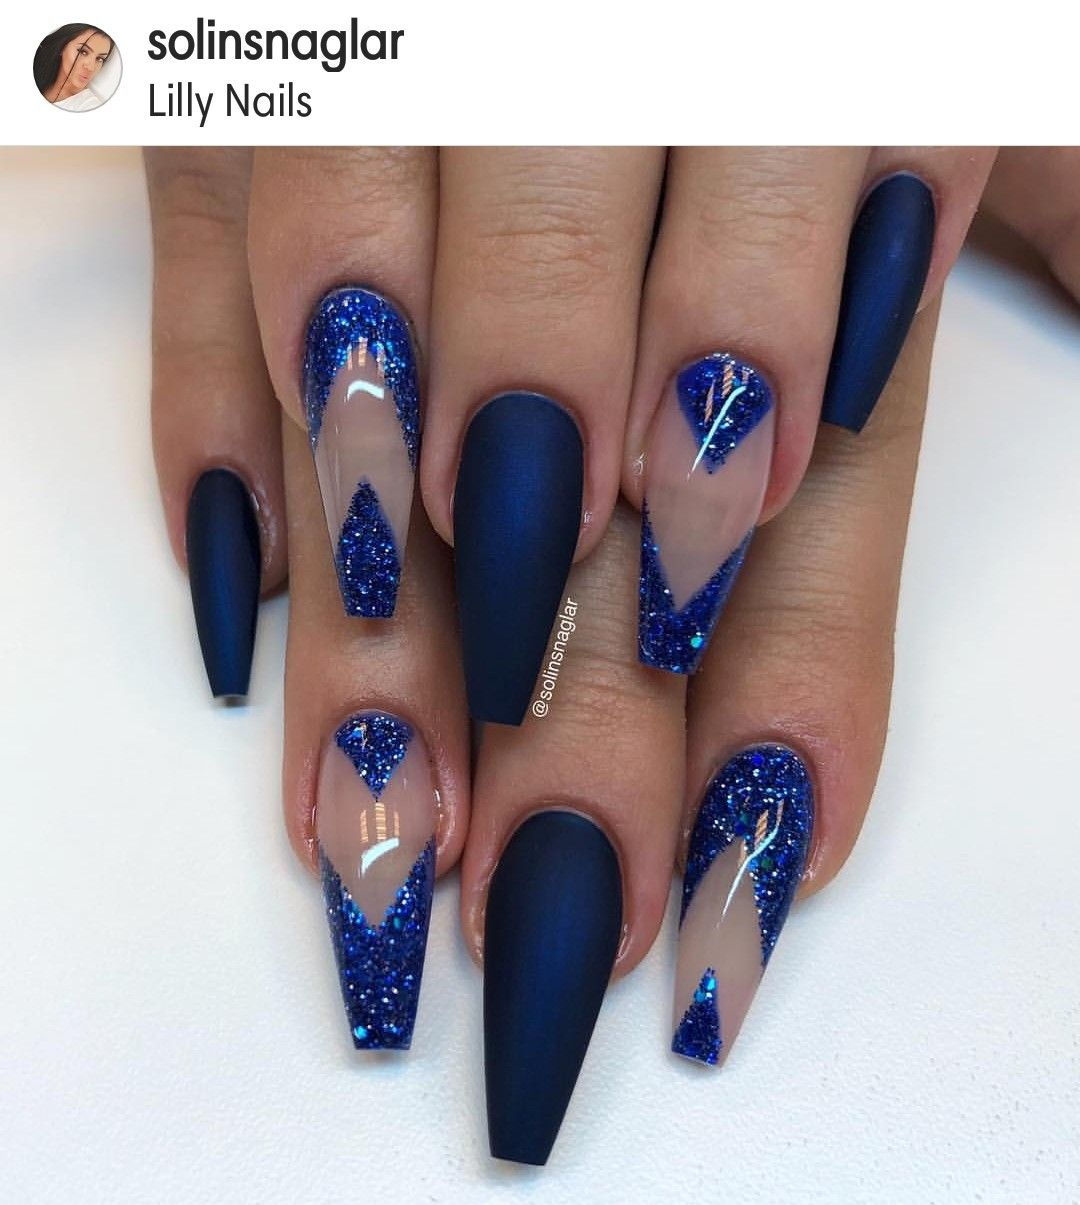 Pin de Ky en Nails | Pinterest | Maquillaje